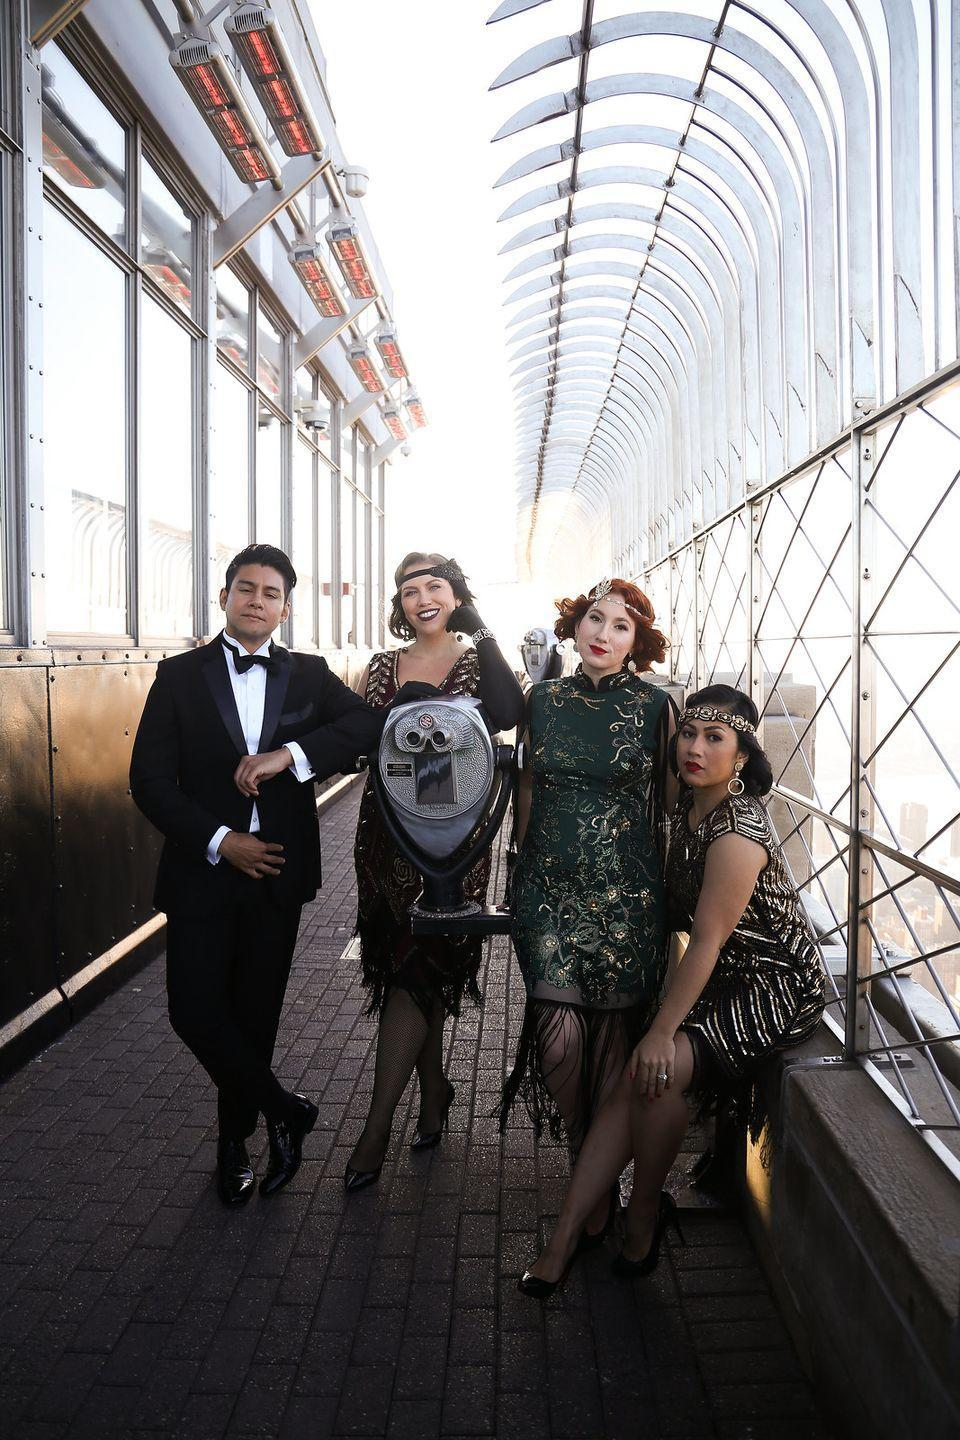 """<p>Not feeling crafty? Channel your inner flapper with these beautiful 1920s-inspired dresses you can purchase for a quick group idea (they're honestly pretty enough to wear to an event another time!).</p><p><strong>Get the tutorial at </strong><strong><a href=""""http://livingaftermidnite.com/2019/10/group-halloween-costumes-that-will-win-you-best-dressed.html"""" rel=""""nofollow noopener"""" target=""""_blank"""" data-ylk=""""slk:Living after Midnite"""" class=""""link rapid-noclick-resp"""">Living after Midnite</a>.</strong></p><p><a class=""""link rapid-noclick-resp"""" href=""""https://www.amazon.com/Metme-Roaring-Dresses-Cocktail-Flapper/dp/B07M6P42R7/ref=sr_1_2?dchild=1&keywords=roaring+20s+dress+women&qid=1591987370&sr=8-2&tag=syn-yahoo-20&ascsubtag=%5Bartid%7C10050.g.21349110%5Bsrc%7Cyahoo-us"""" rel=""""nofollow noopener"""" target=""""_blank"""" data-ylk=""""slk:SHOP FLAPPER'S DRESSES"""">SHOP FLAPPER'S DRESSES</a></p>"""